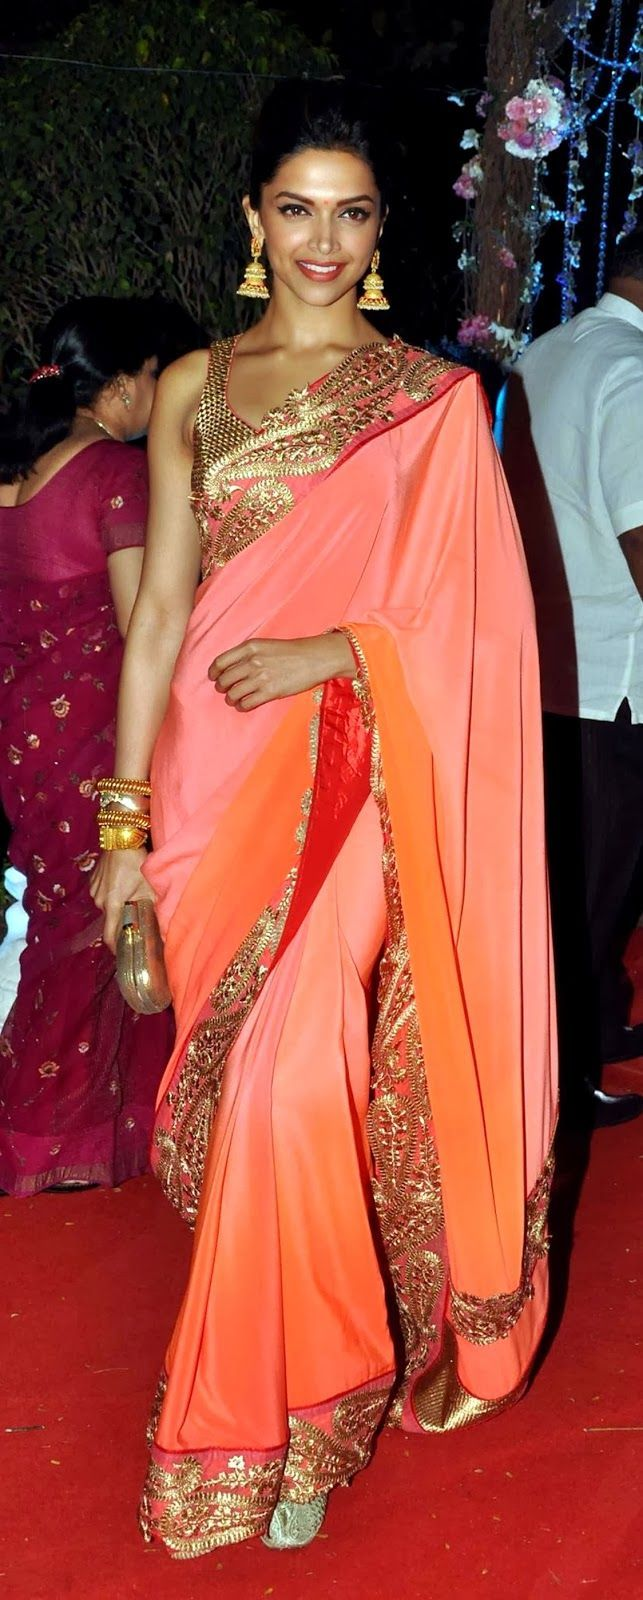 Deepika Padukone in Jade by Monica & Karishma A lovely ombre orange and pink saree with gold embellishments. It's the perfect saree for guests attending an evening wedding function. Beautifully paired with jhumka earrings by Amrapali. Indian designer - Indian couture #thecrimsonbride Visit us at : http://silksareeonline.blogspot.in